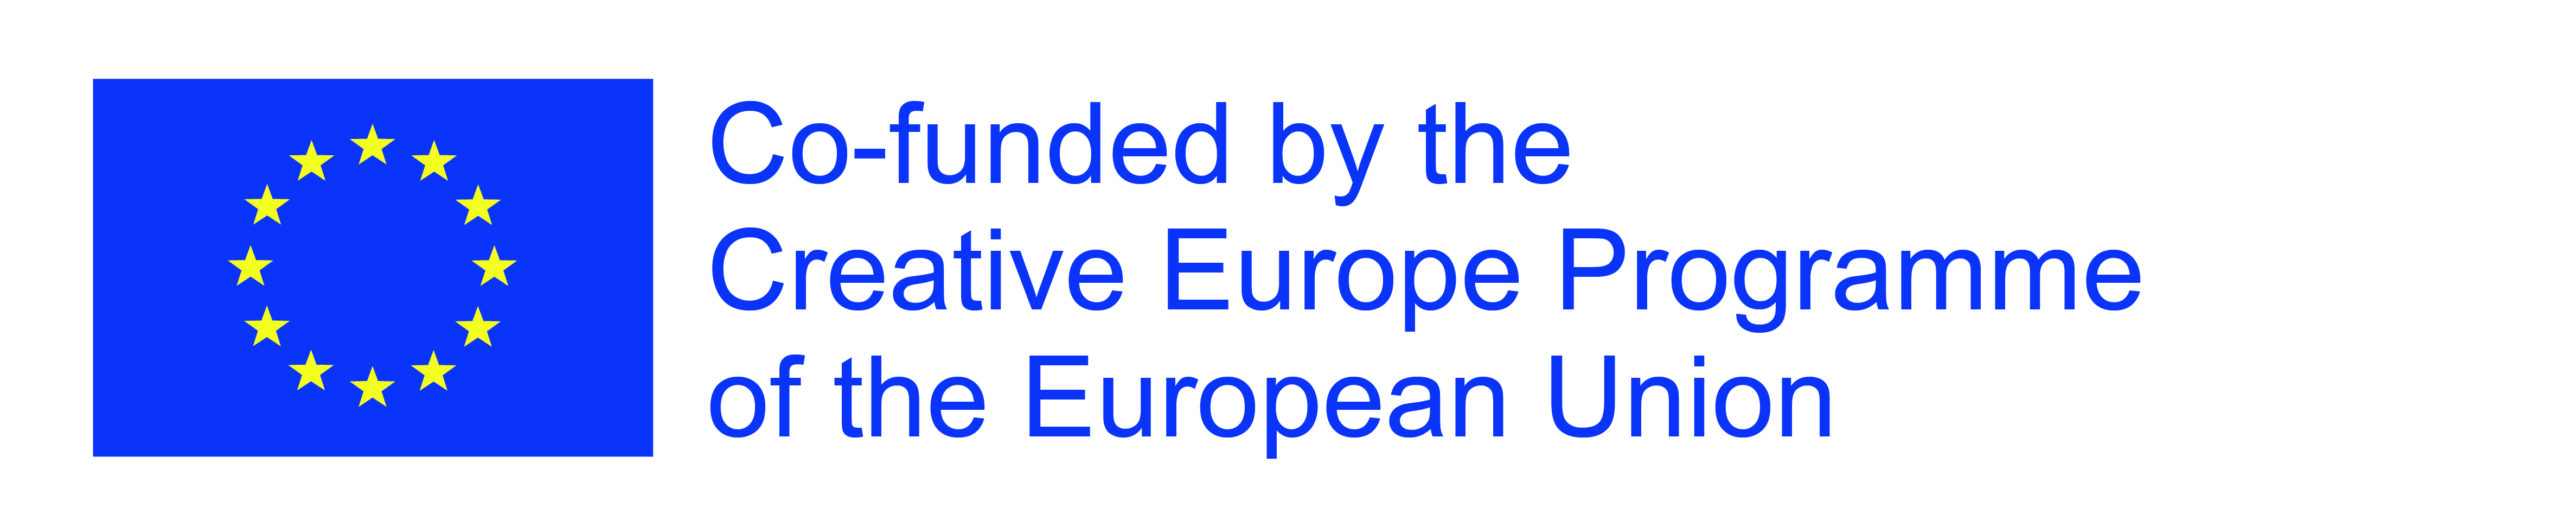 Logo_Co-funded_by_CEP_EU